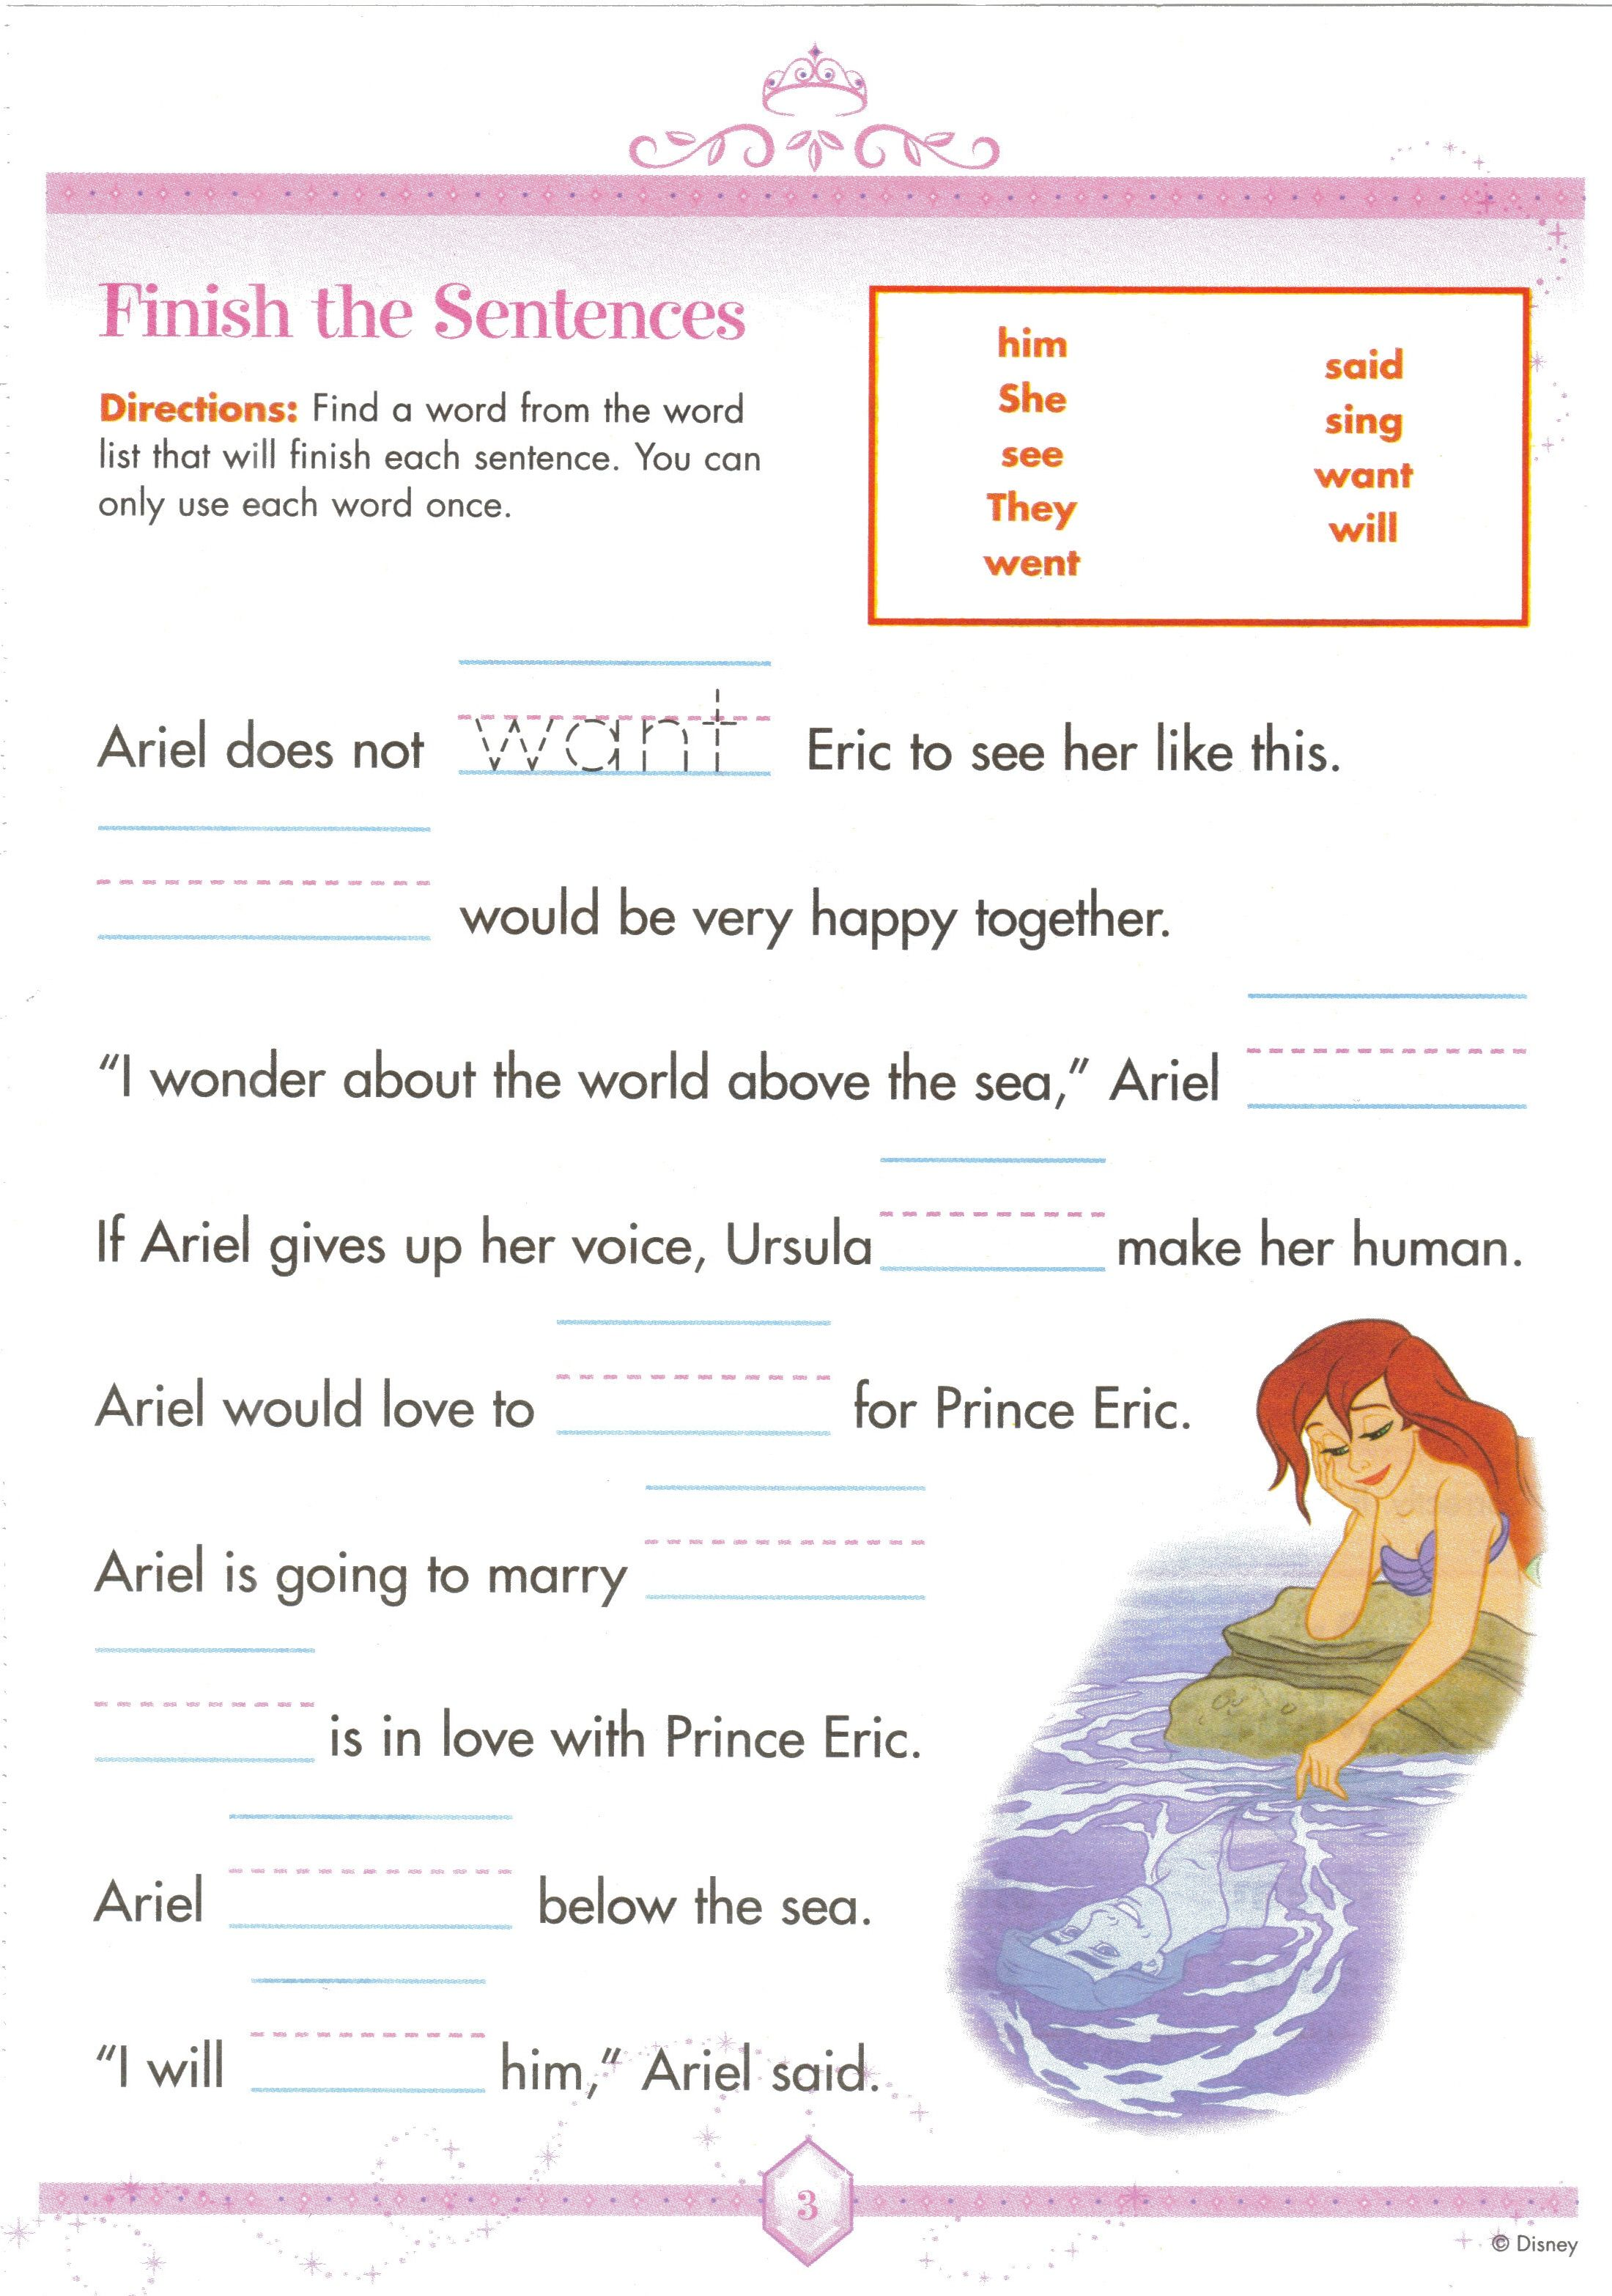 Weirdmailus  Ravishing  Images About Worksheets On Pinterest  Fun Facts For Kids  With Interesting  Images About Worksheets On Pinterest  Fun Facts For Kids Earth Day Worksheets And Jungles With Enchanting Worksheet Letters Also Timestable Worksheets In Addition Worksheets On Conjunctions For Grade  And Pre K Alphabet Worksheet As Well As Counting Numbers  Worksheets Additionally Worksheet On Pronoun From Pinterestcom With Weirdmailus  Interesting  Images About Worksheets On Pinterest  Fun Facts For Kids  With Enchanting  Images About Worksheets On Pinterest  Fun Facts For Kids Earth Day Worksheets And Jungles And Ravishing Worksheet Letters Also Timestable Worksheets In Addition Worksheets On Conjunctions For Grade  From Pinterestcom